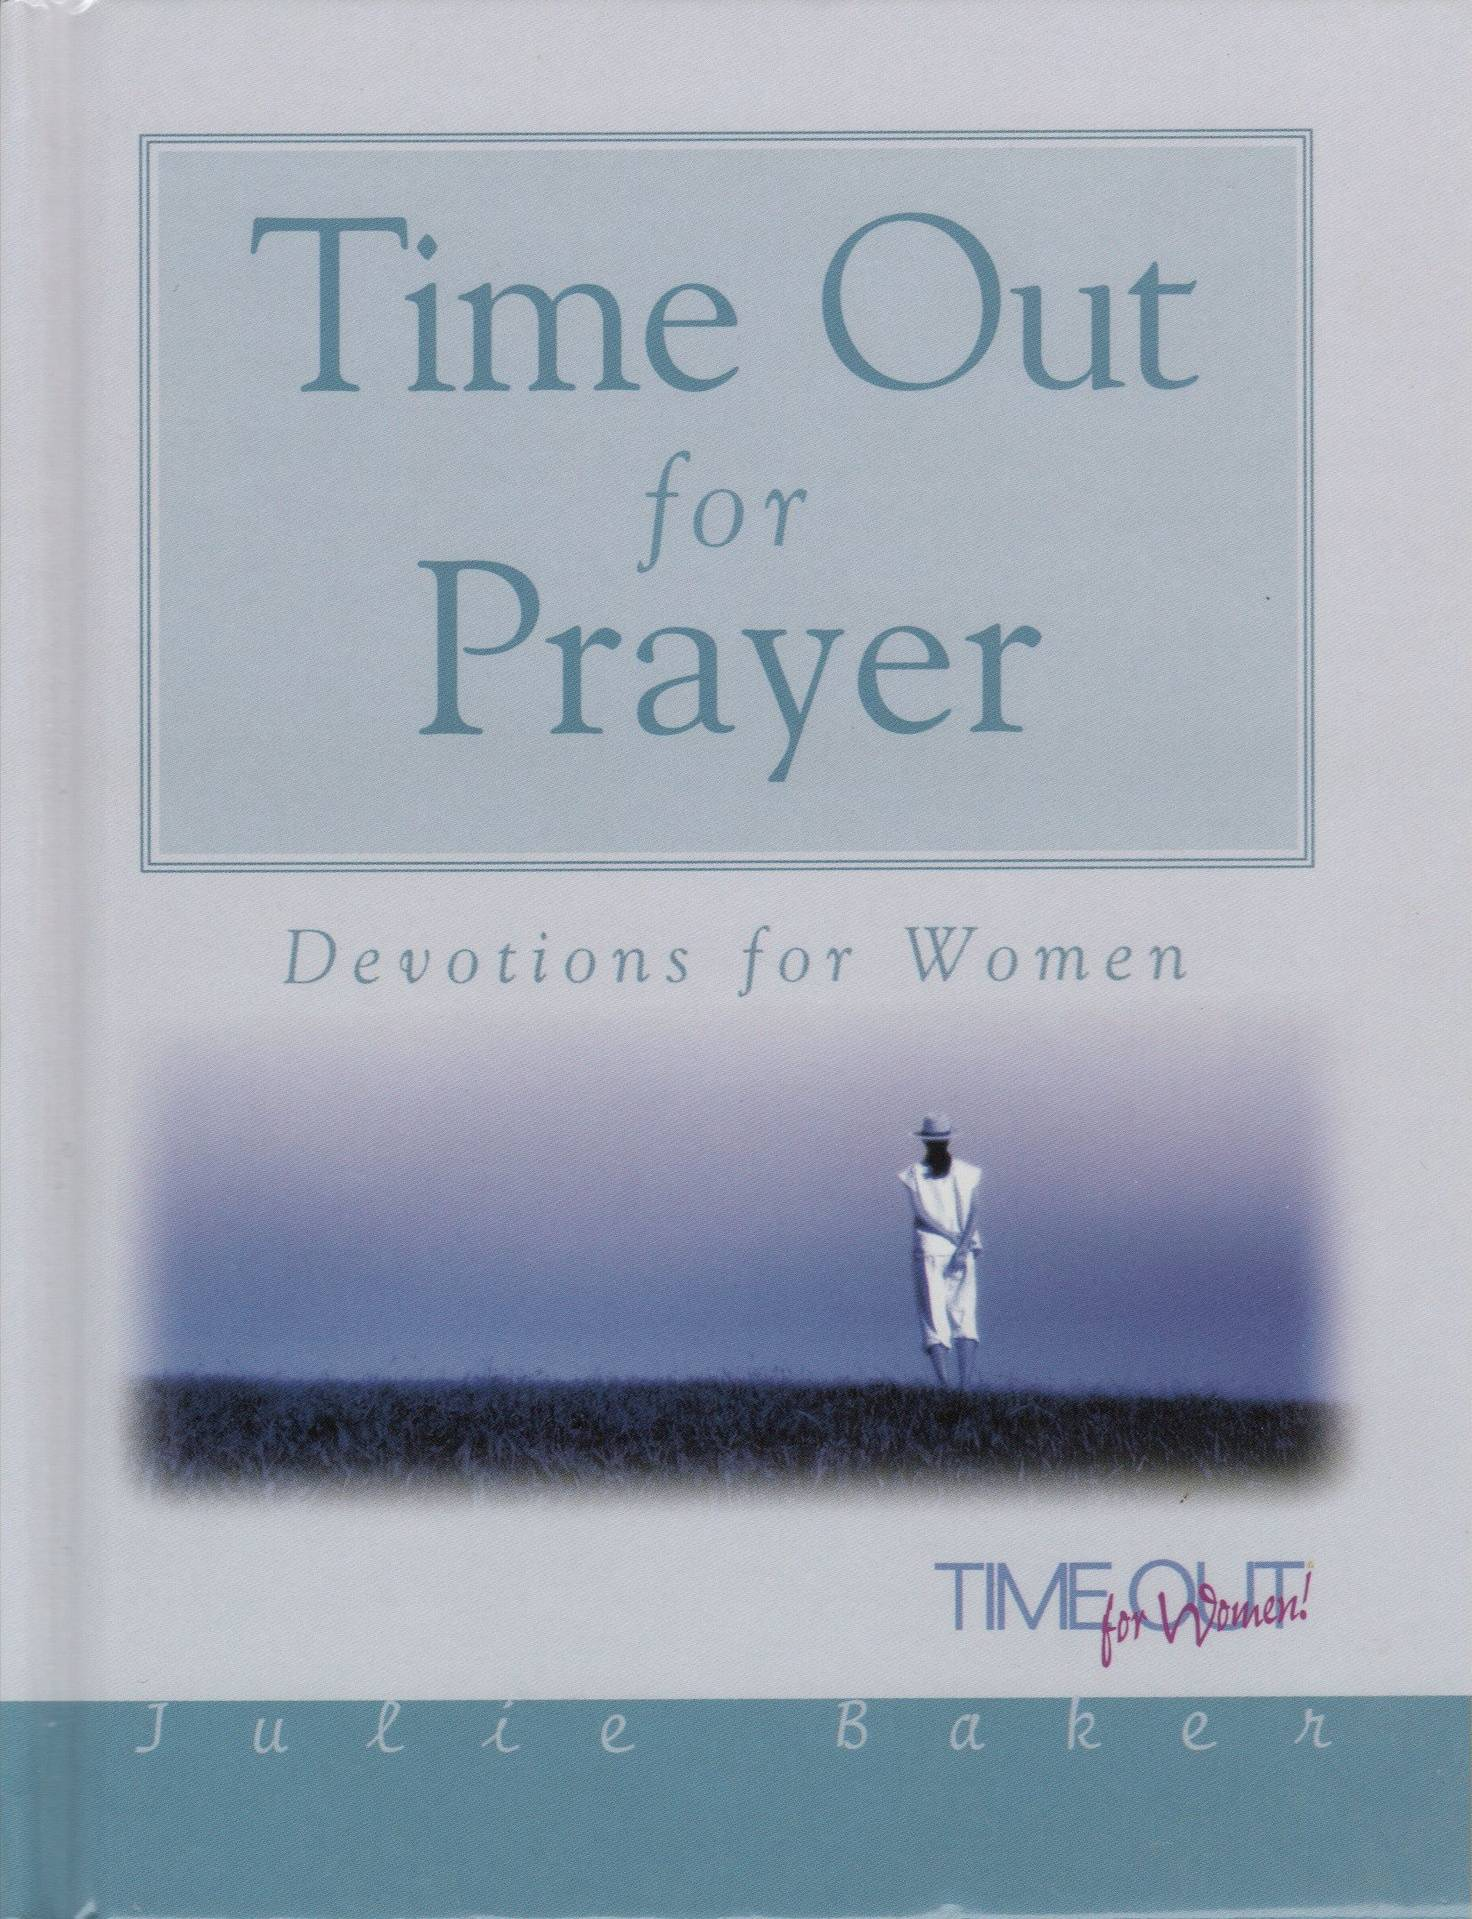 TimeOut for Prayer